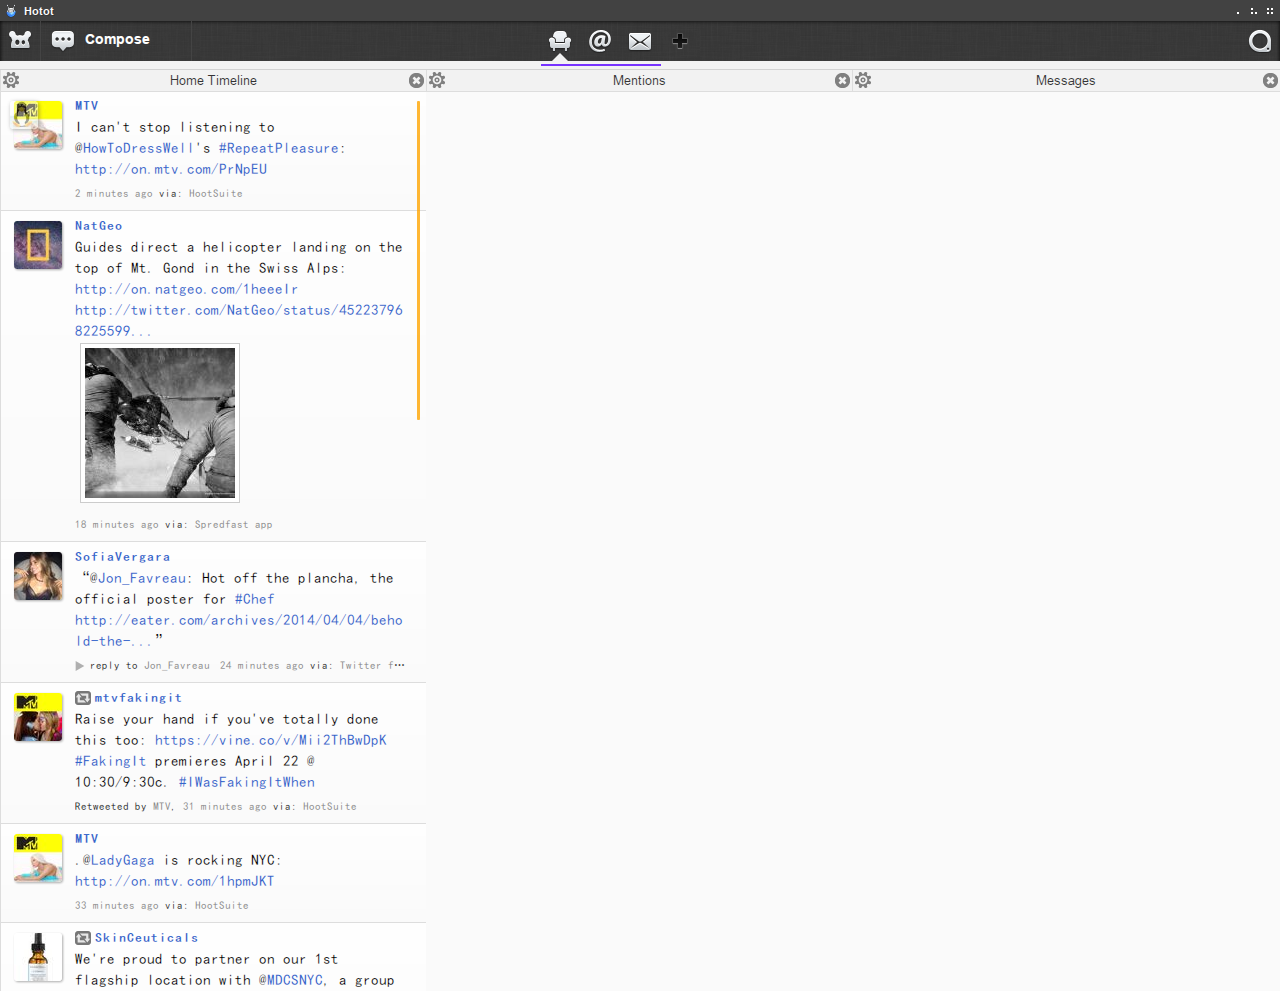 Hotot a lightweight application for Twitter users in Linux